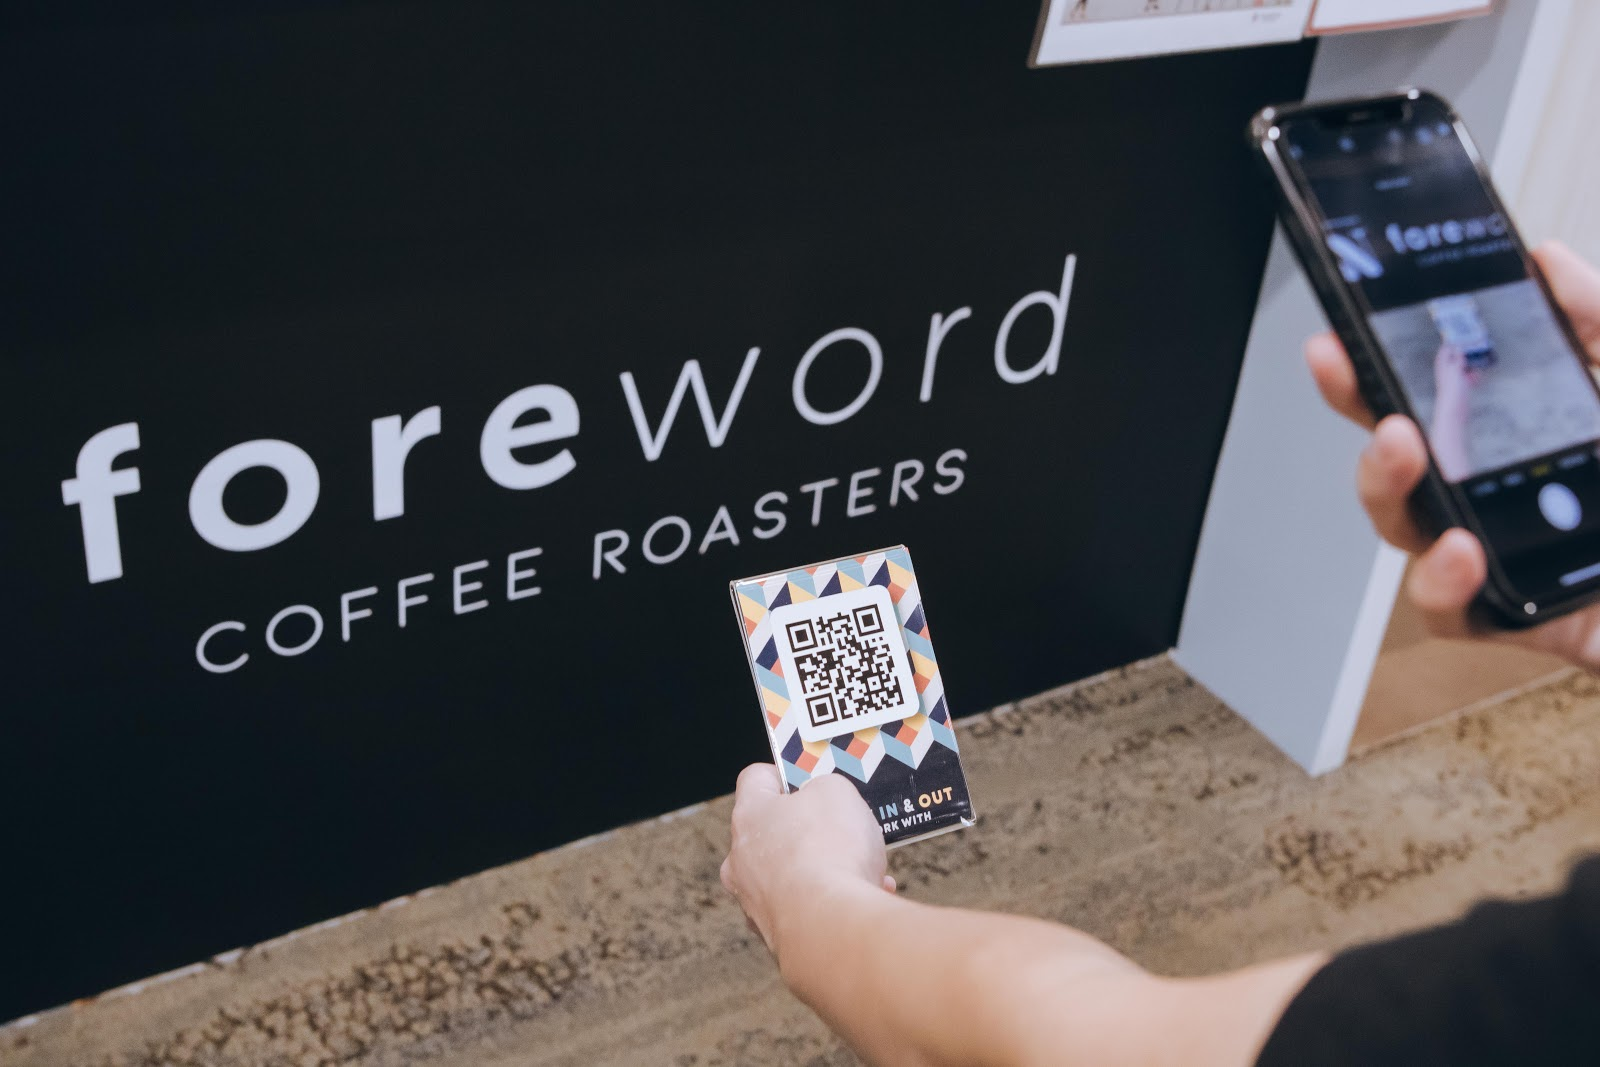 Employee at Foreword Coffee Roasters checking in with StaffAny